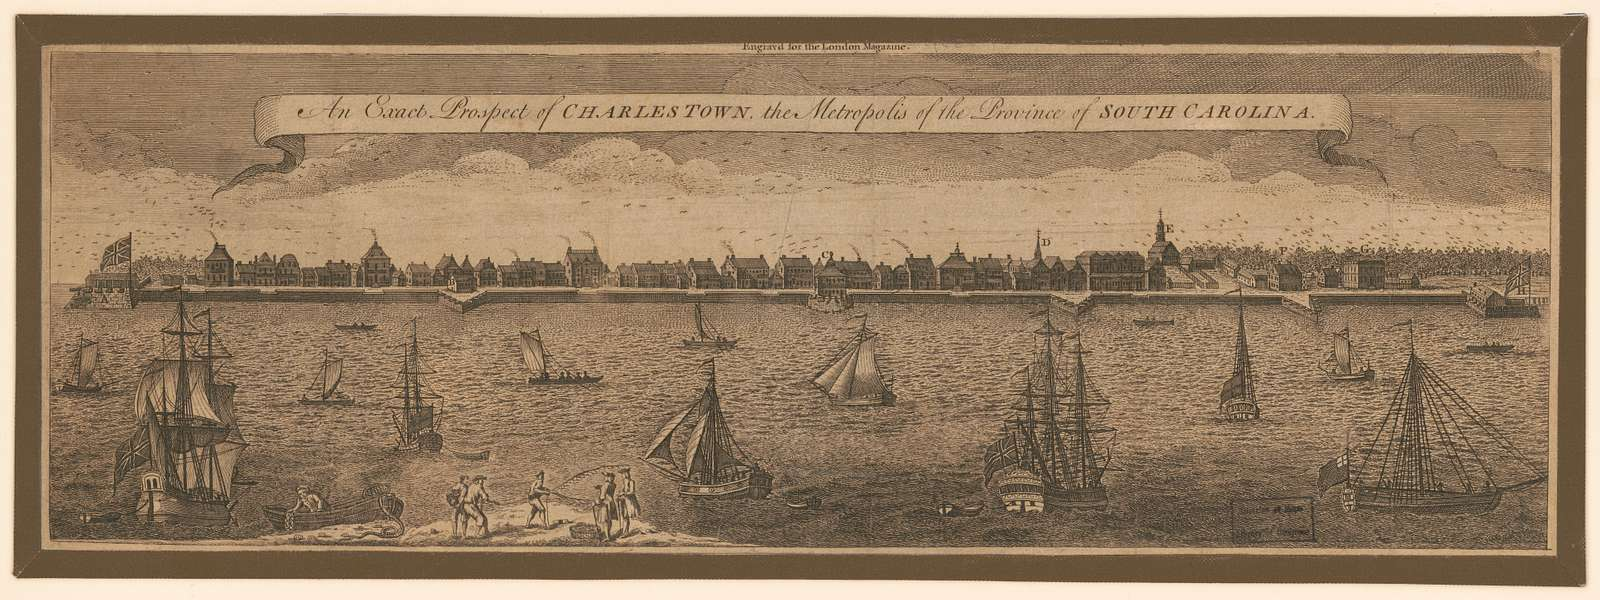 An exact prospect of Charlestown, the metropolis of the province of South Carolina